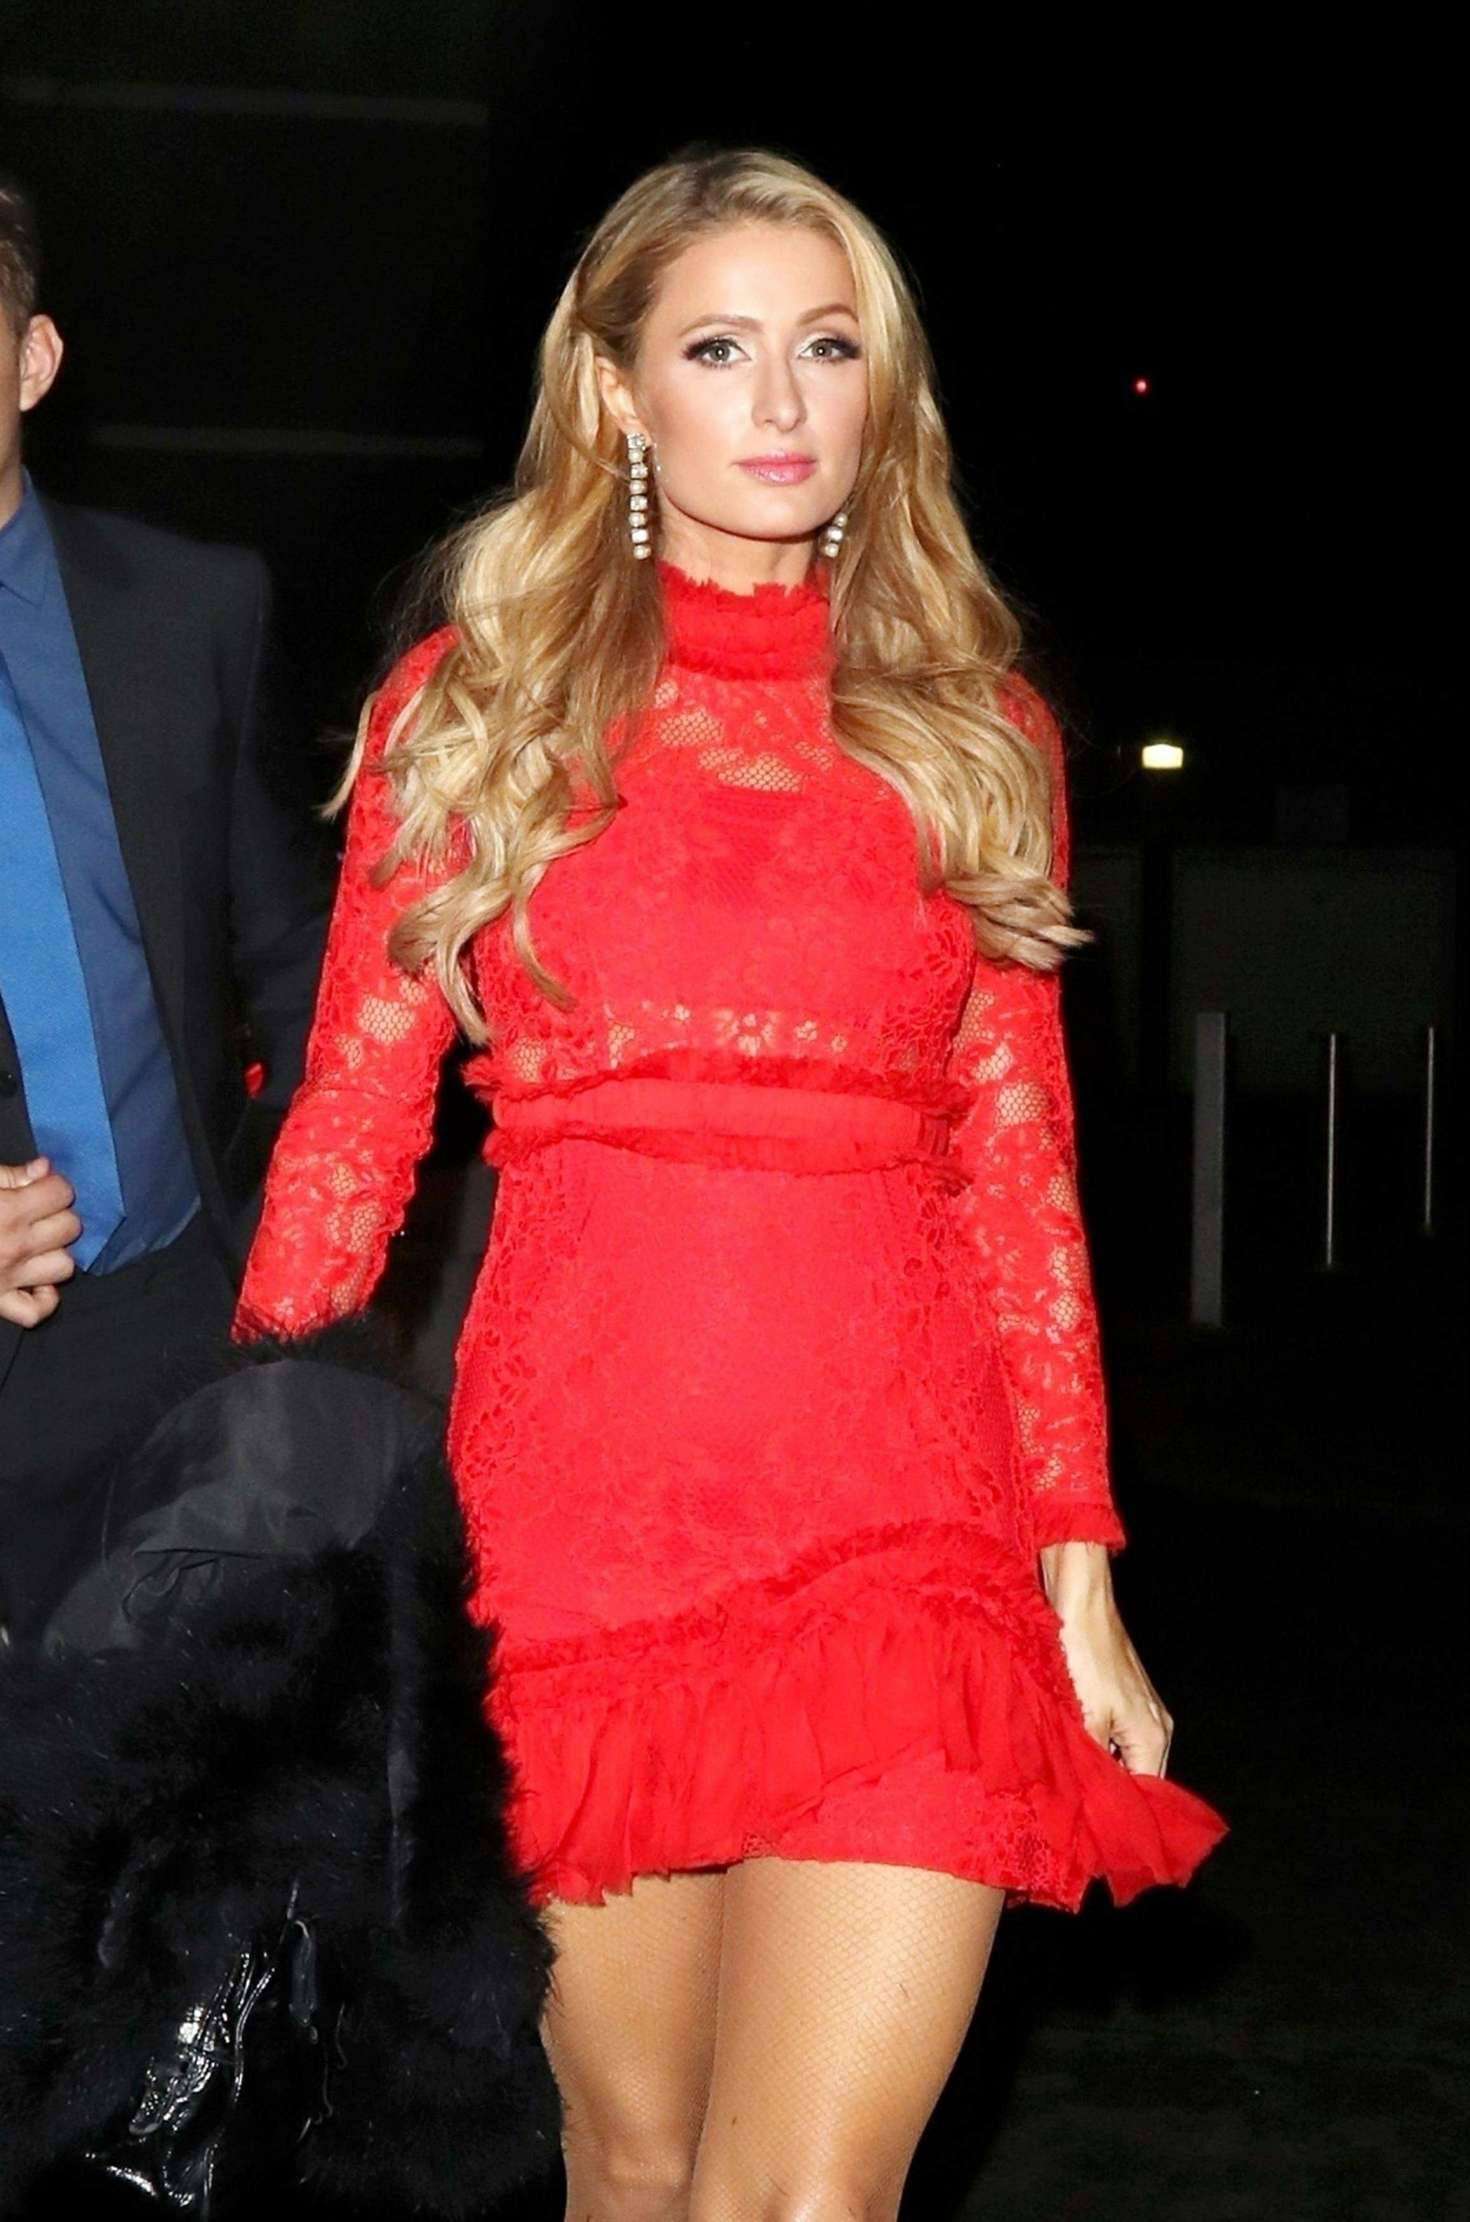 Paris Hilton In Red Mini Dress Attending House Party In